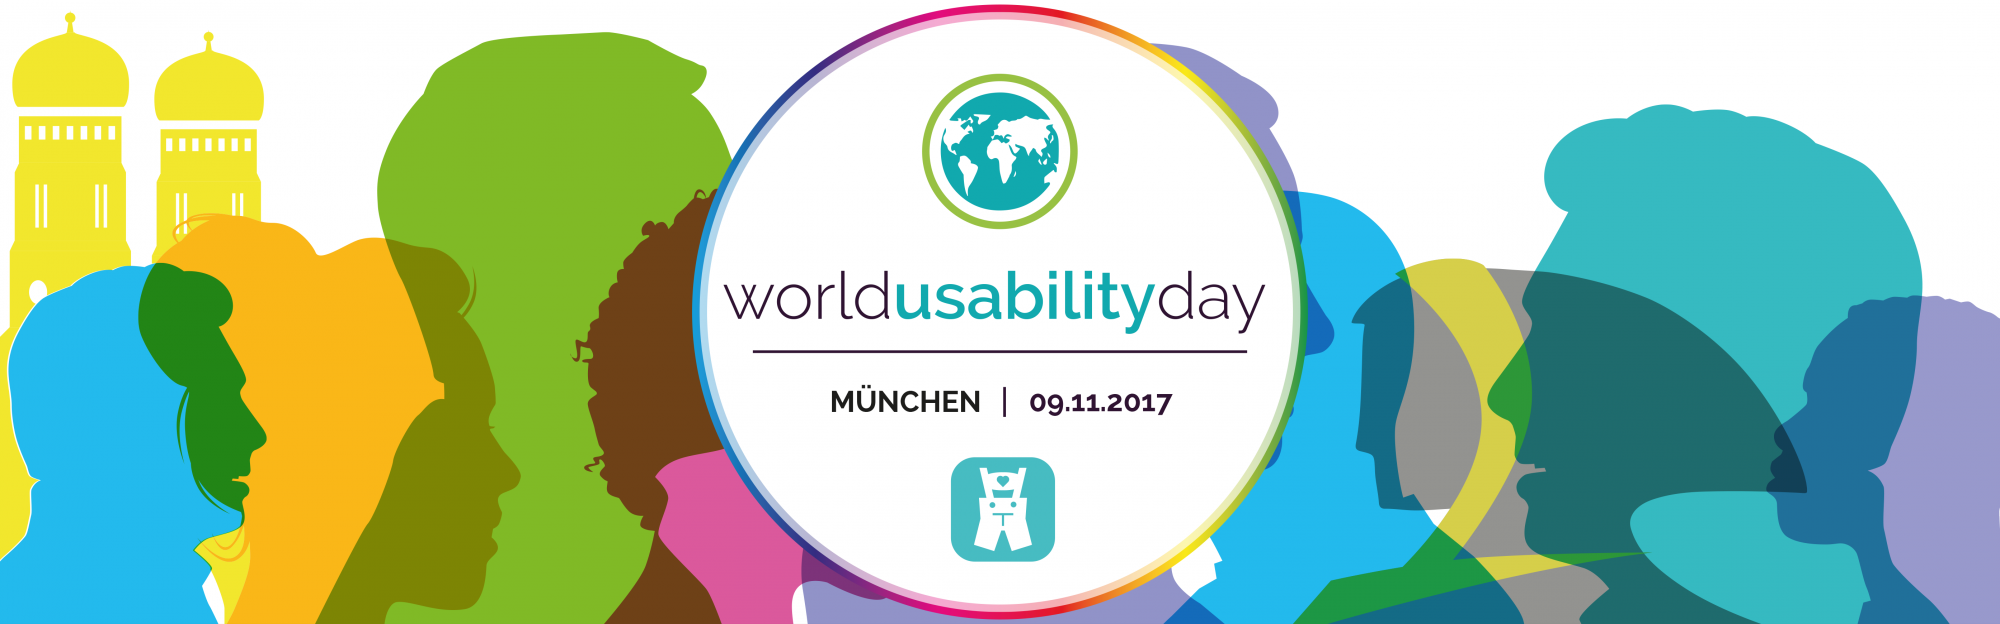 World Usability Day 2017 in München